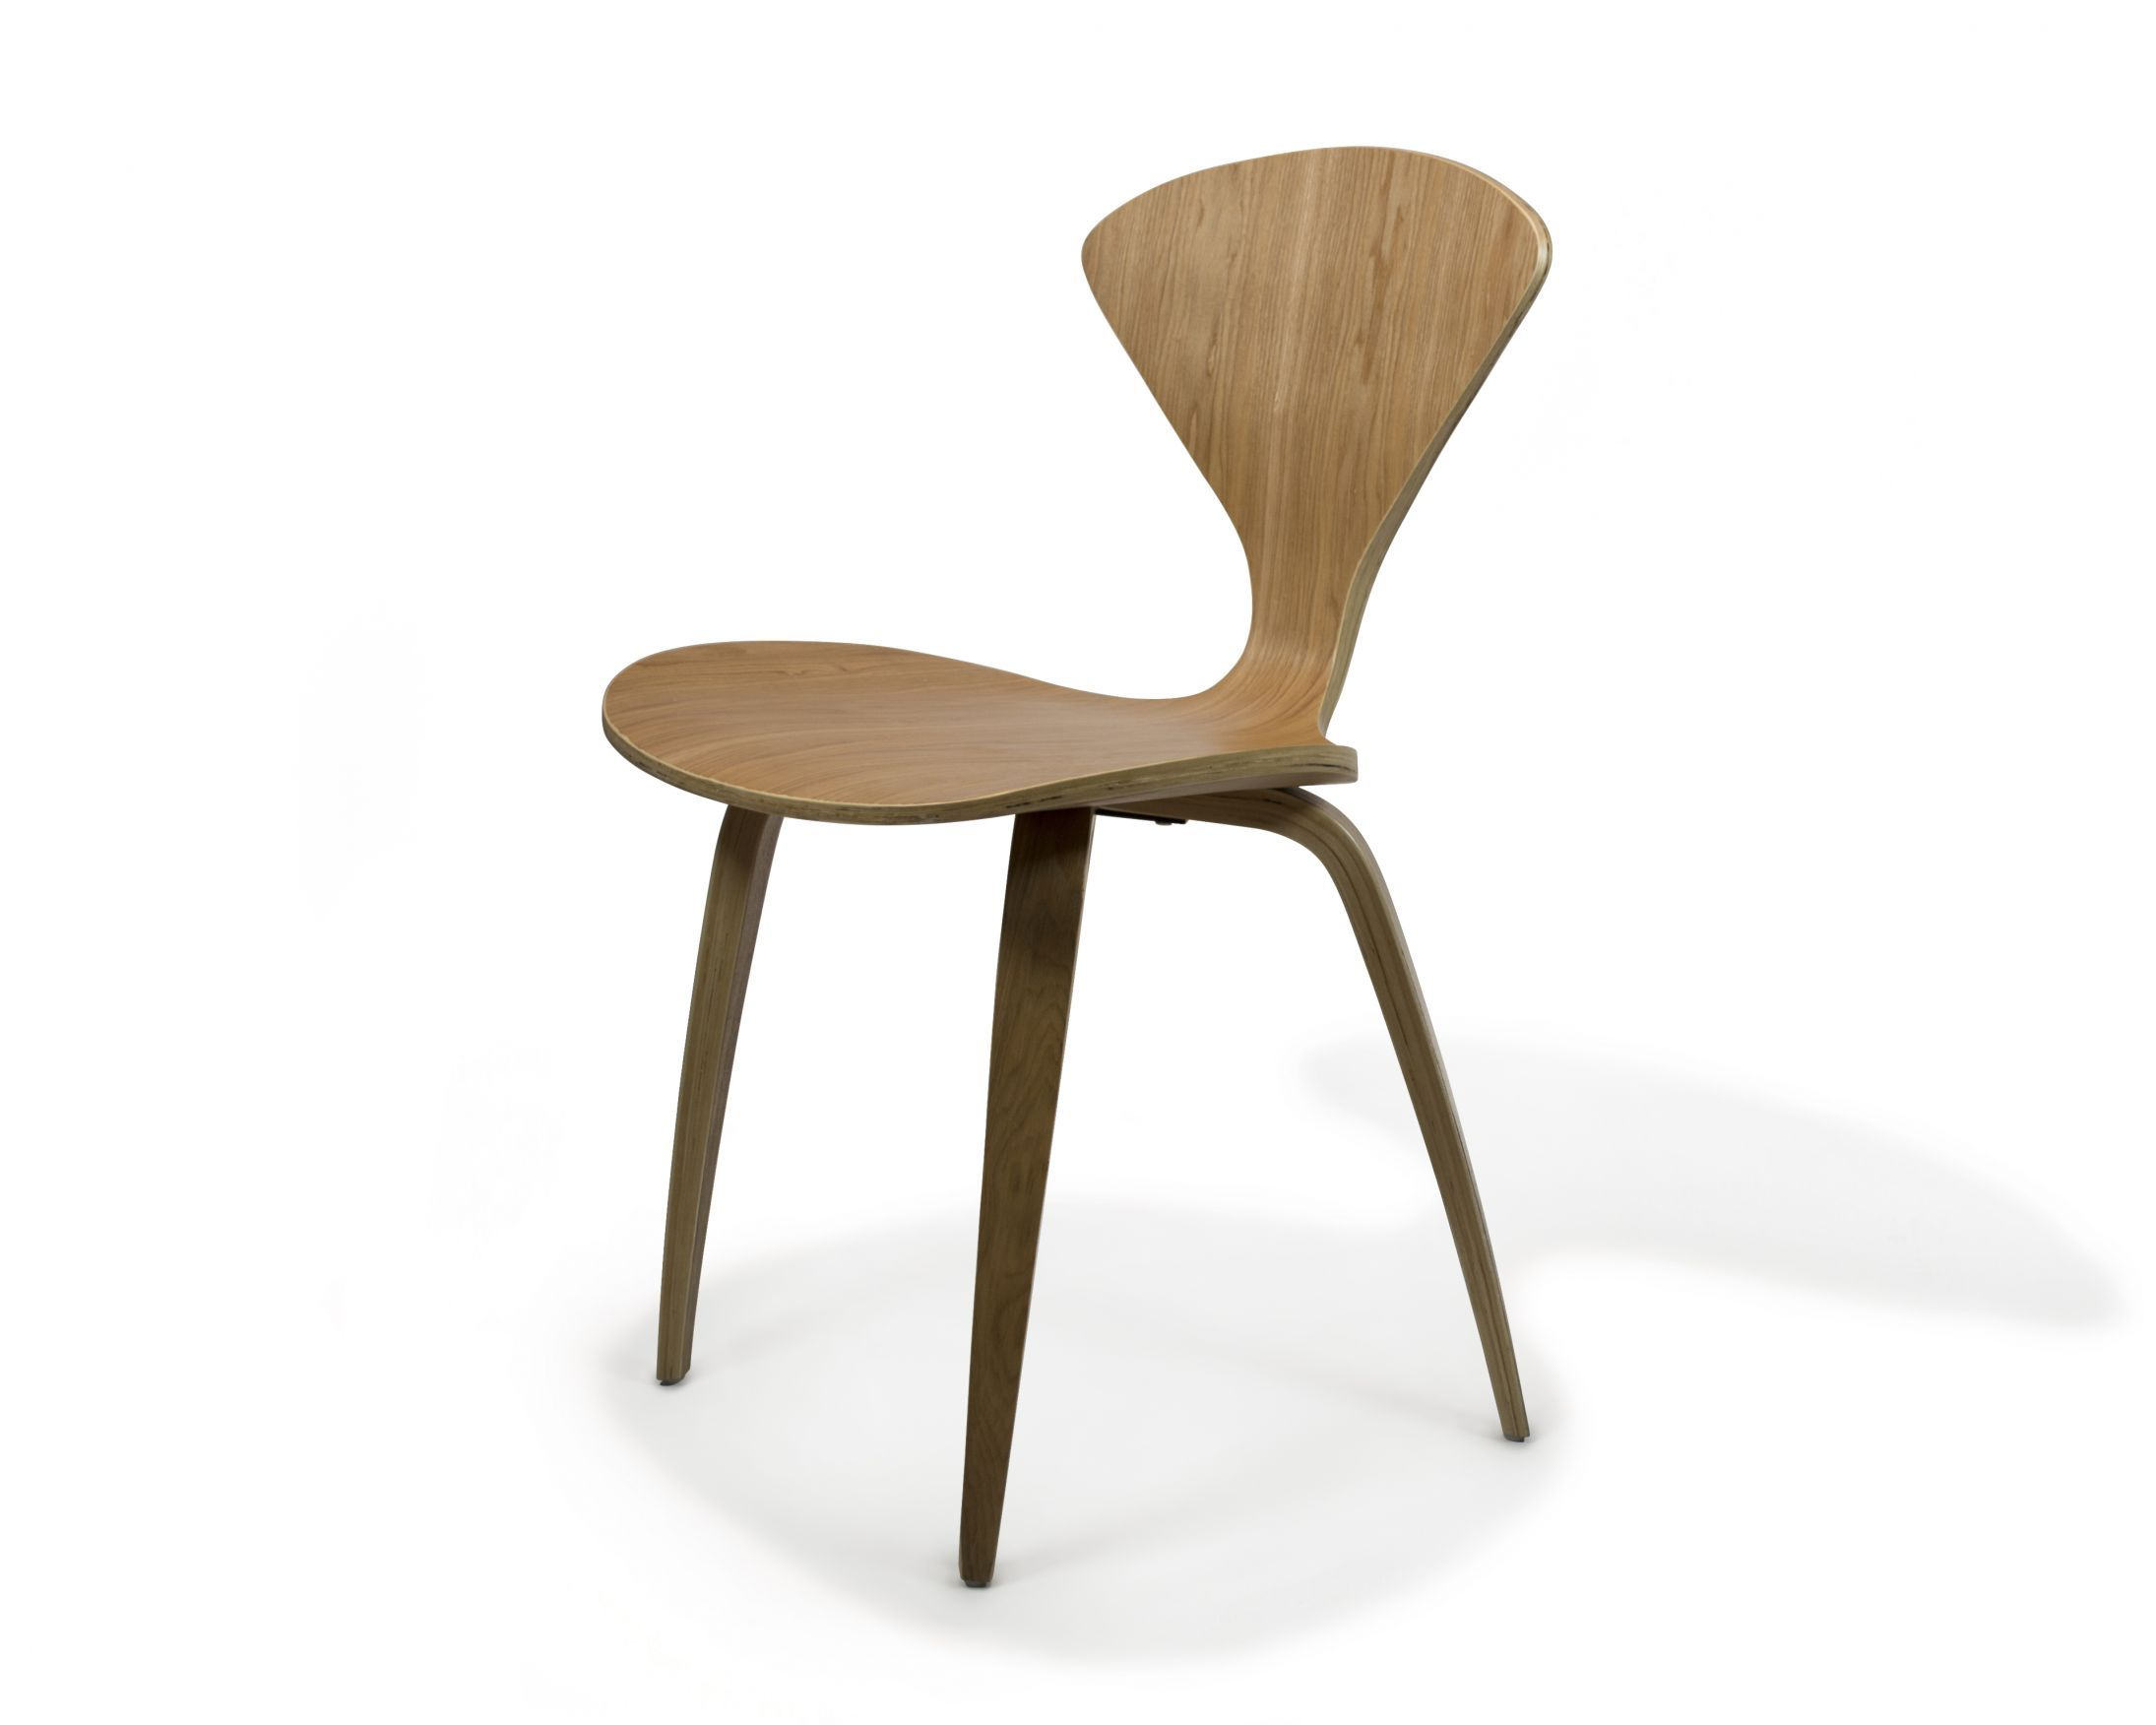 Norman Side Chair Norman Cherner Reproduction